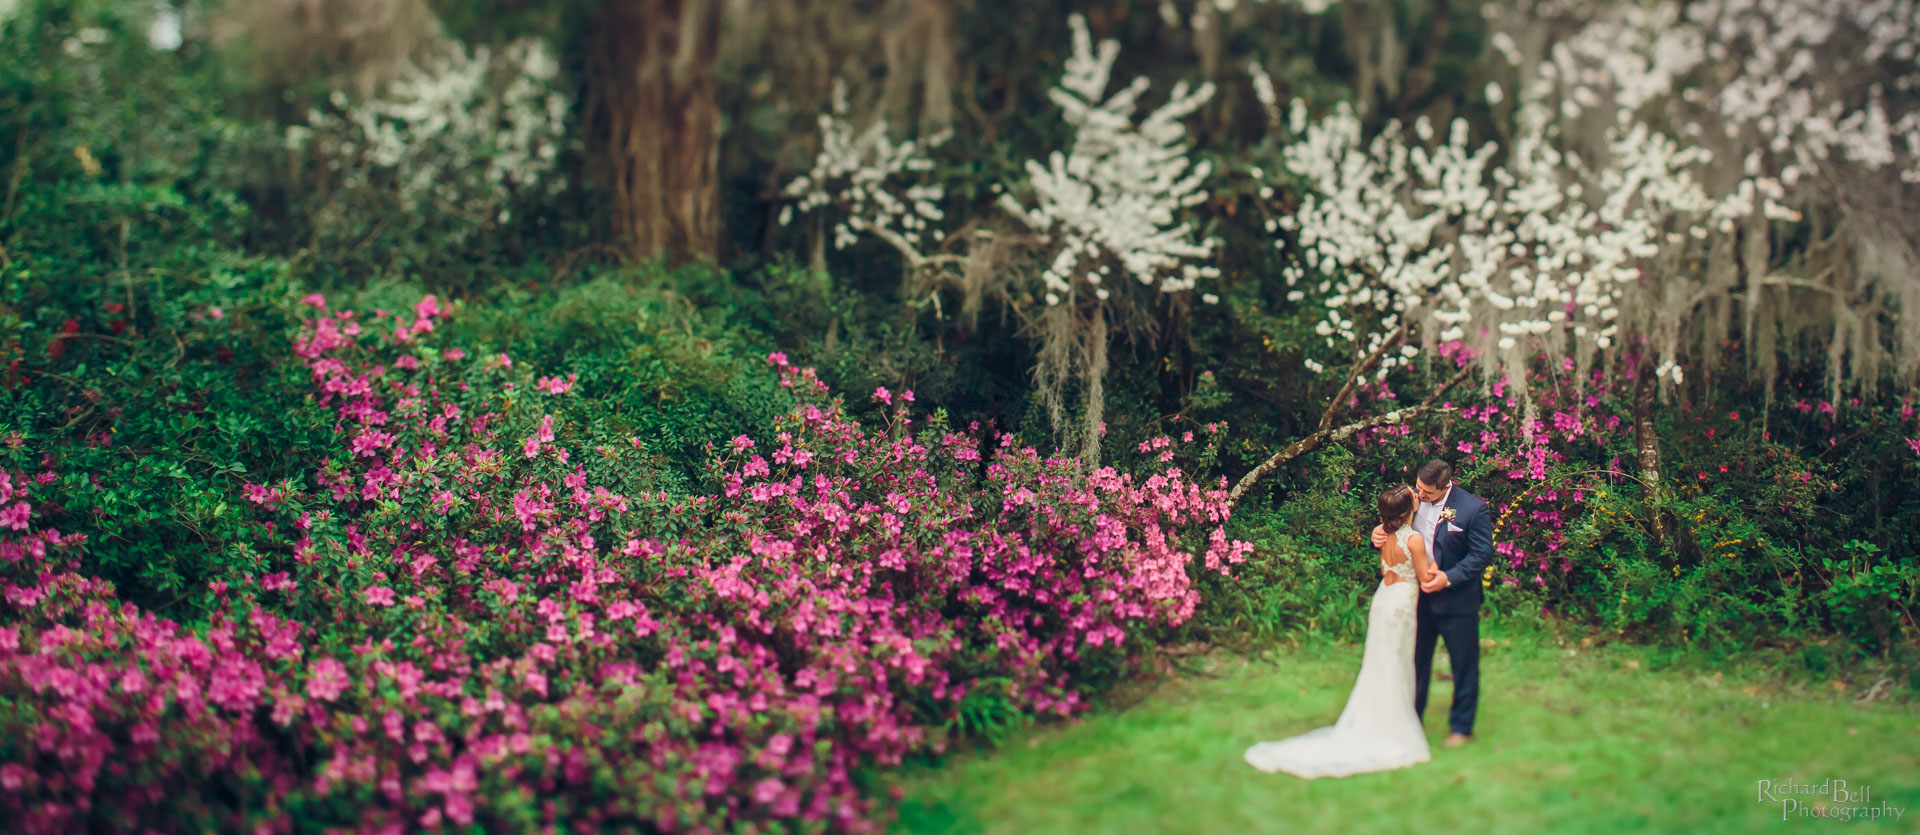 Bride and Groom at Magnolia Plantation